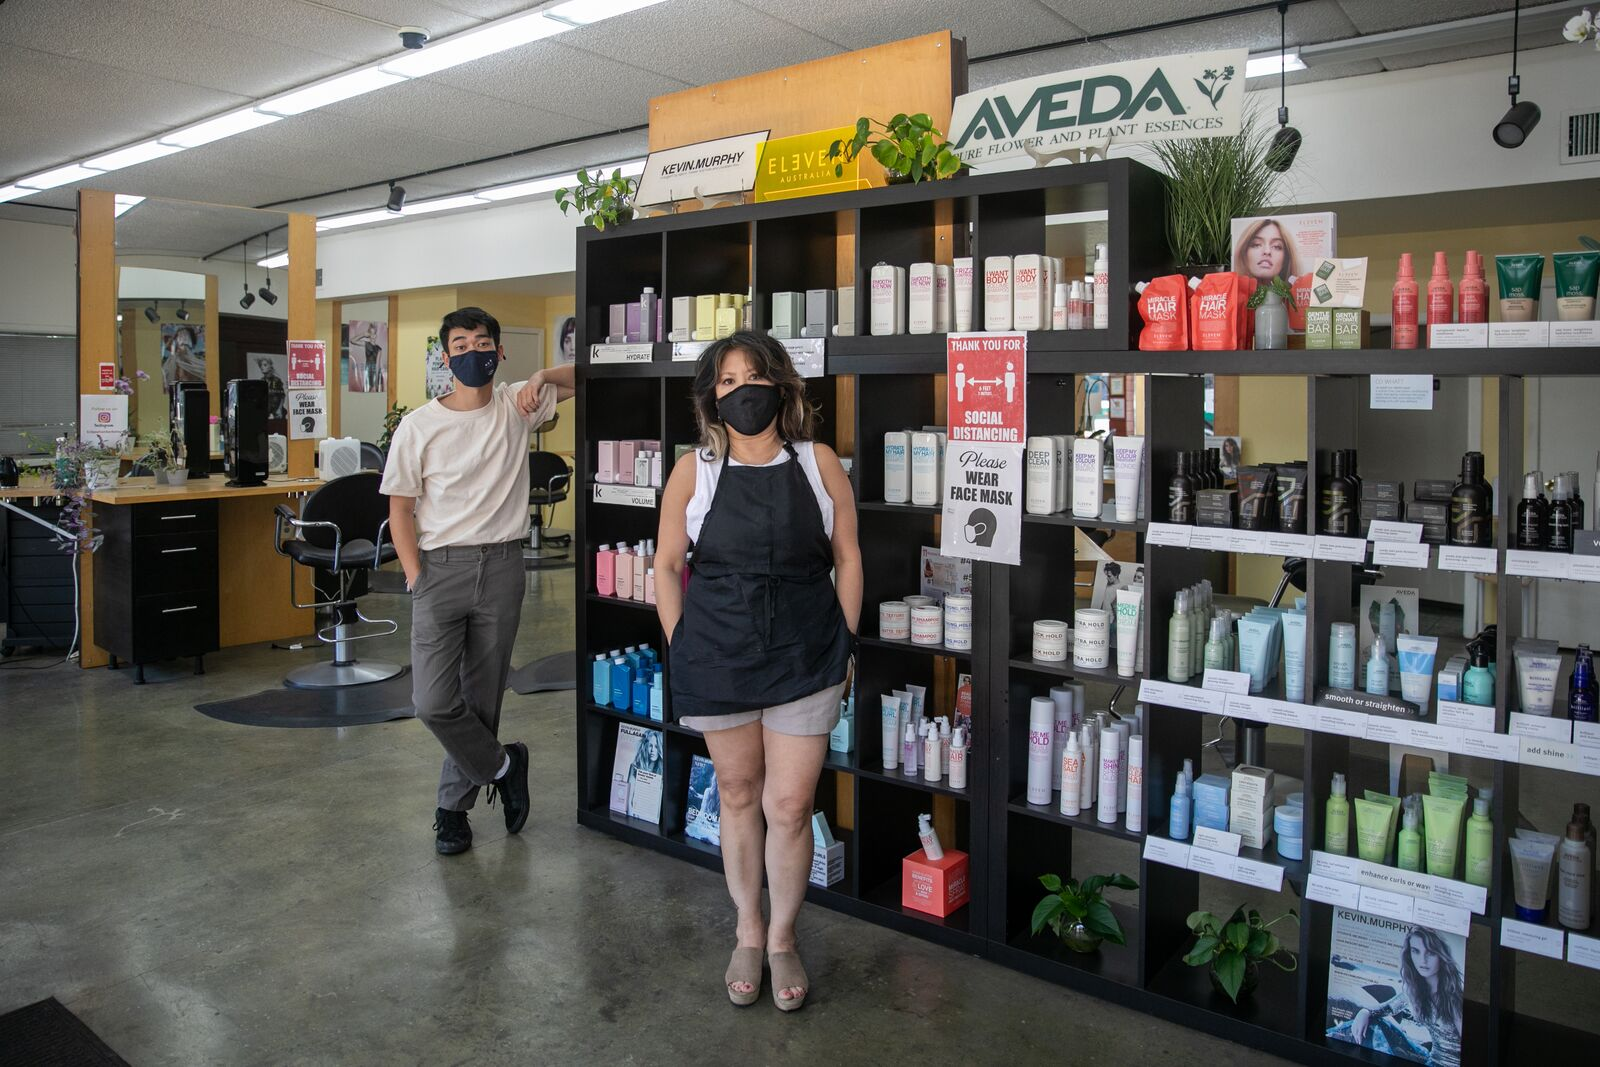 Romello Urbi and Ruby Lynn Urbi at Eclipxe Salon on June 15, 2021. They still require staff to wear masks, but customers are allowed to be unmasked with proof of vaccination. Credit: Kelly Sullivan